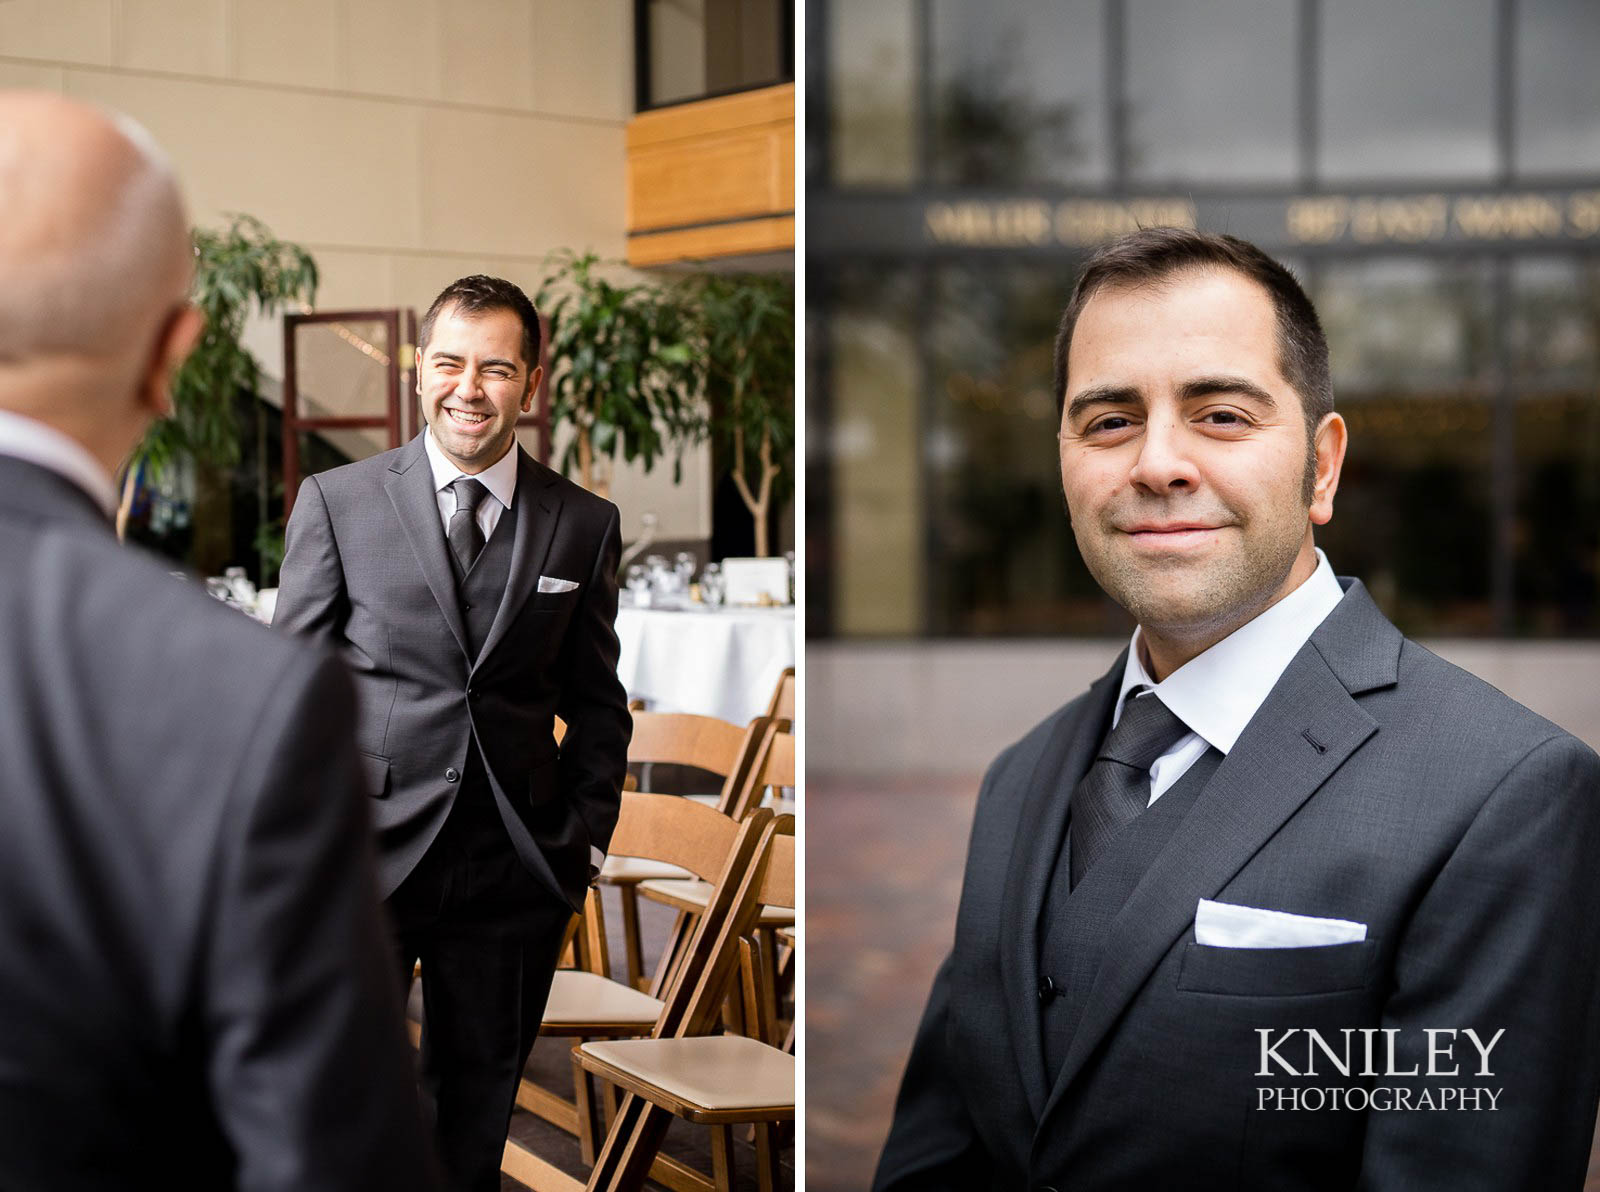 12-Max-of-Eastman-Wedding-and-Reception-Rochester-NY-Kniley-Photography.jpg